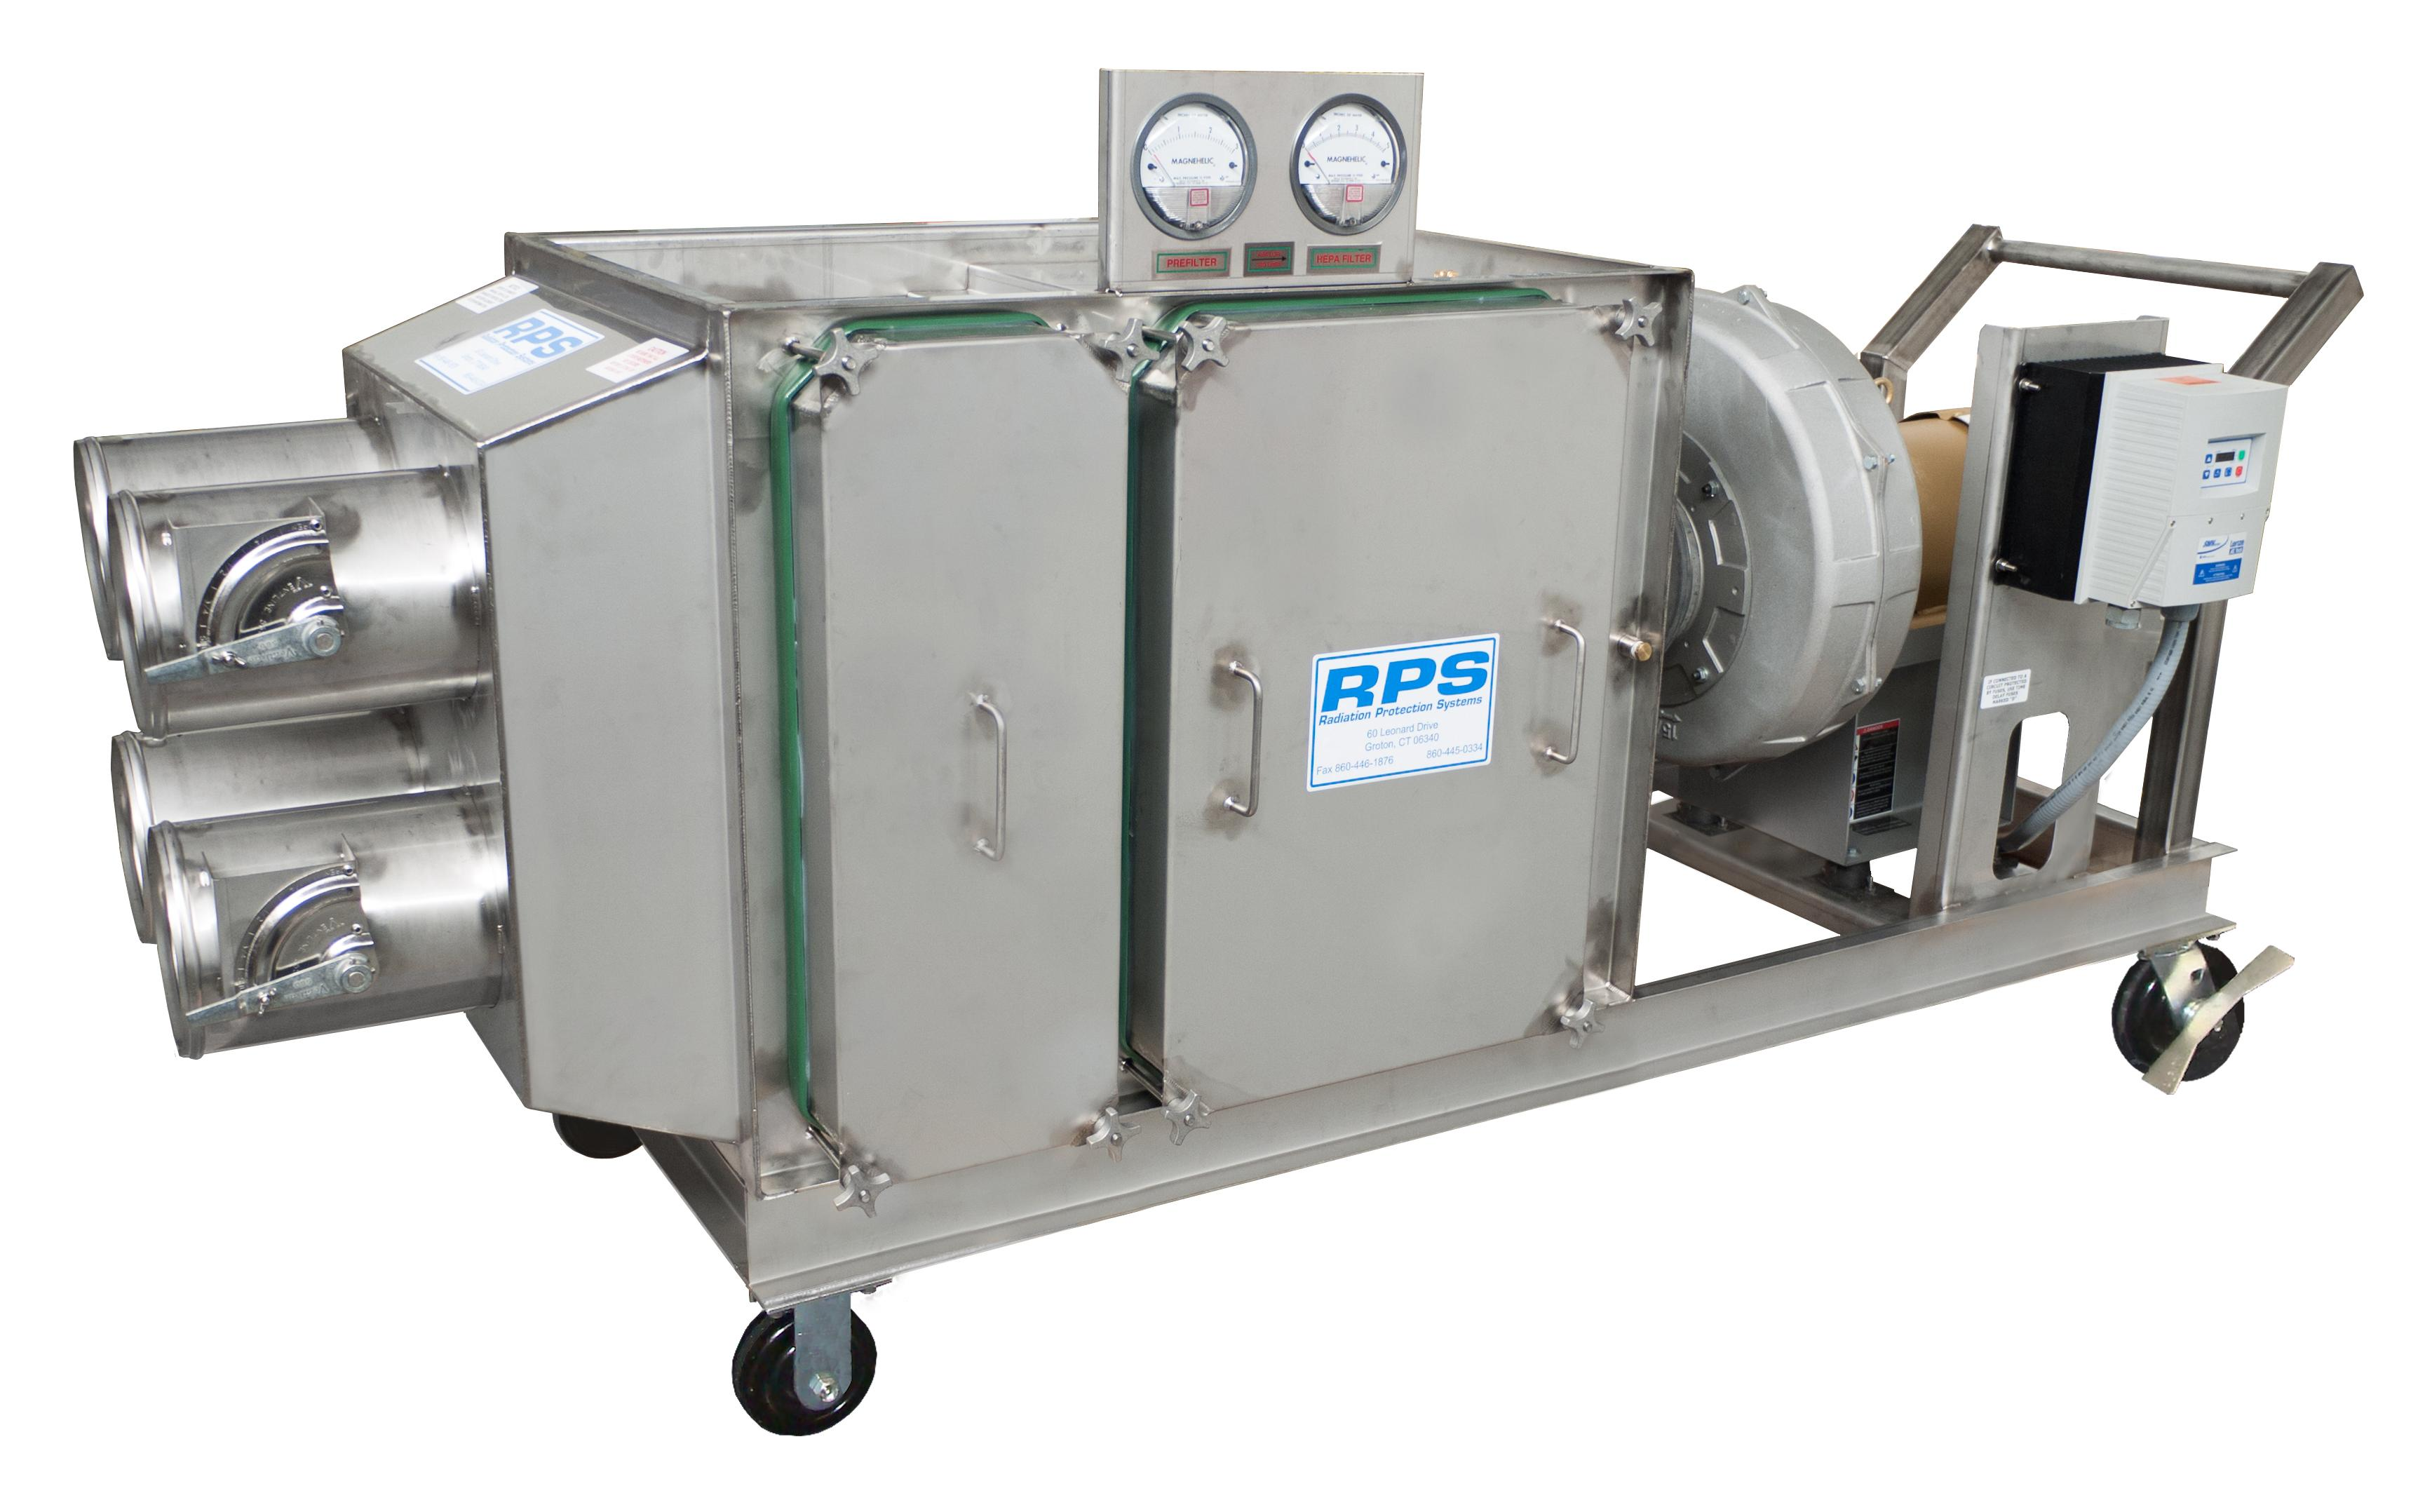 Portable Hepa Air Filtration Adsorption Amp Treatment Systems